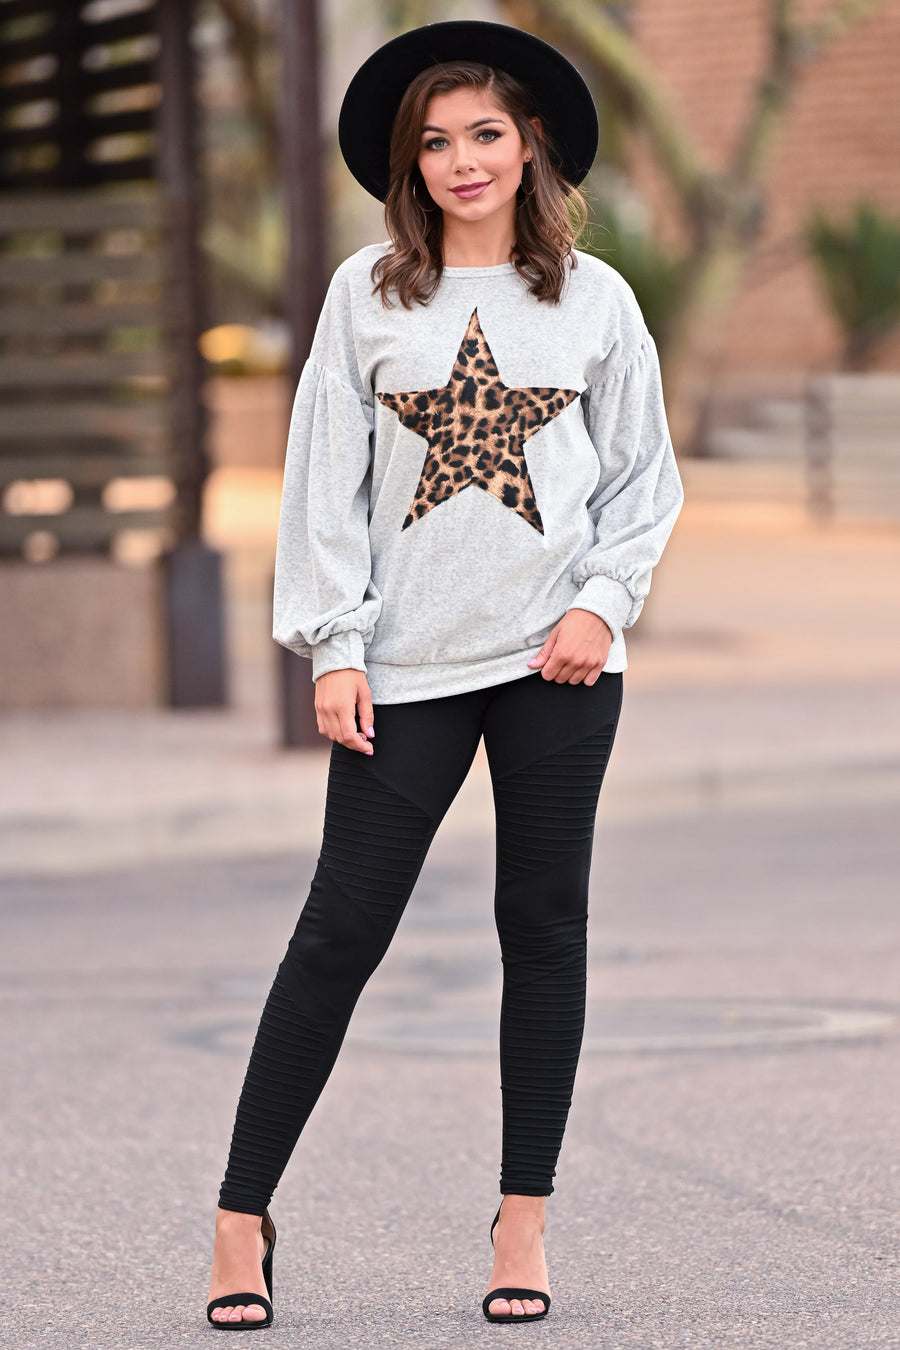 Both Sides Star Top - Grey womens casual velvet long sleeve star leopard print top closet candy close; Model: Hannah Sluss